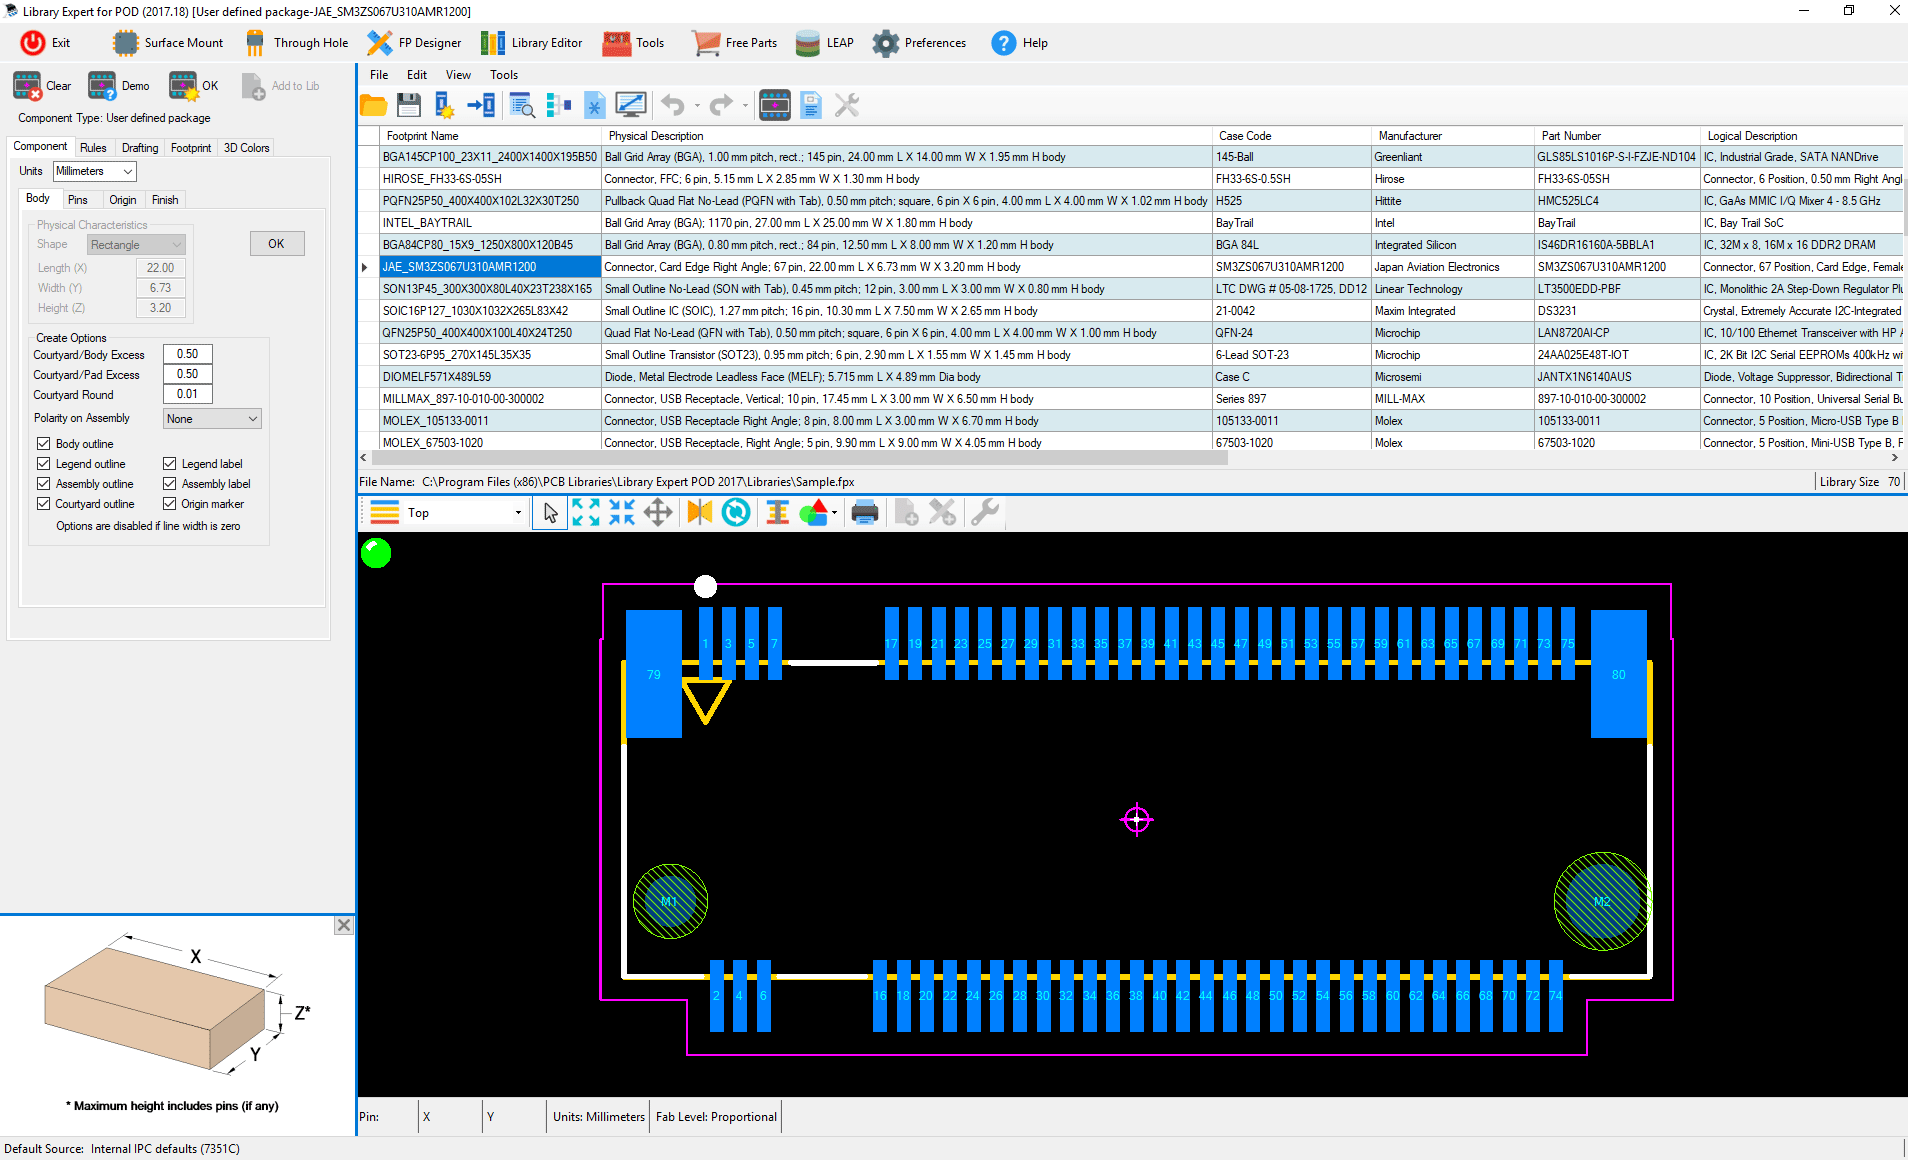 ipc standard pcb library expert POD Builder pod part example 4